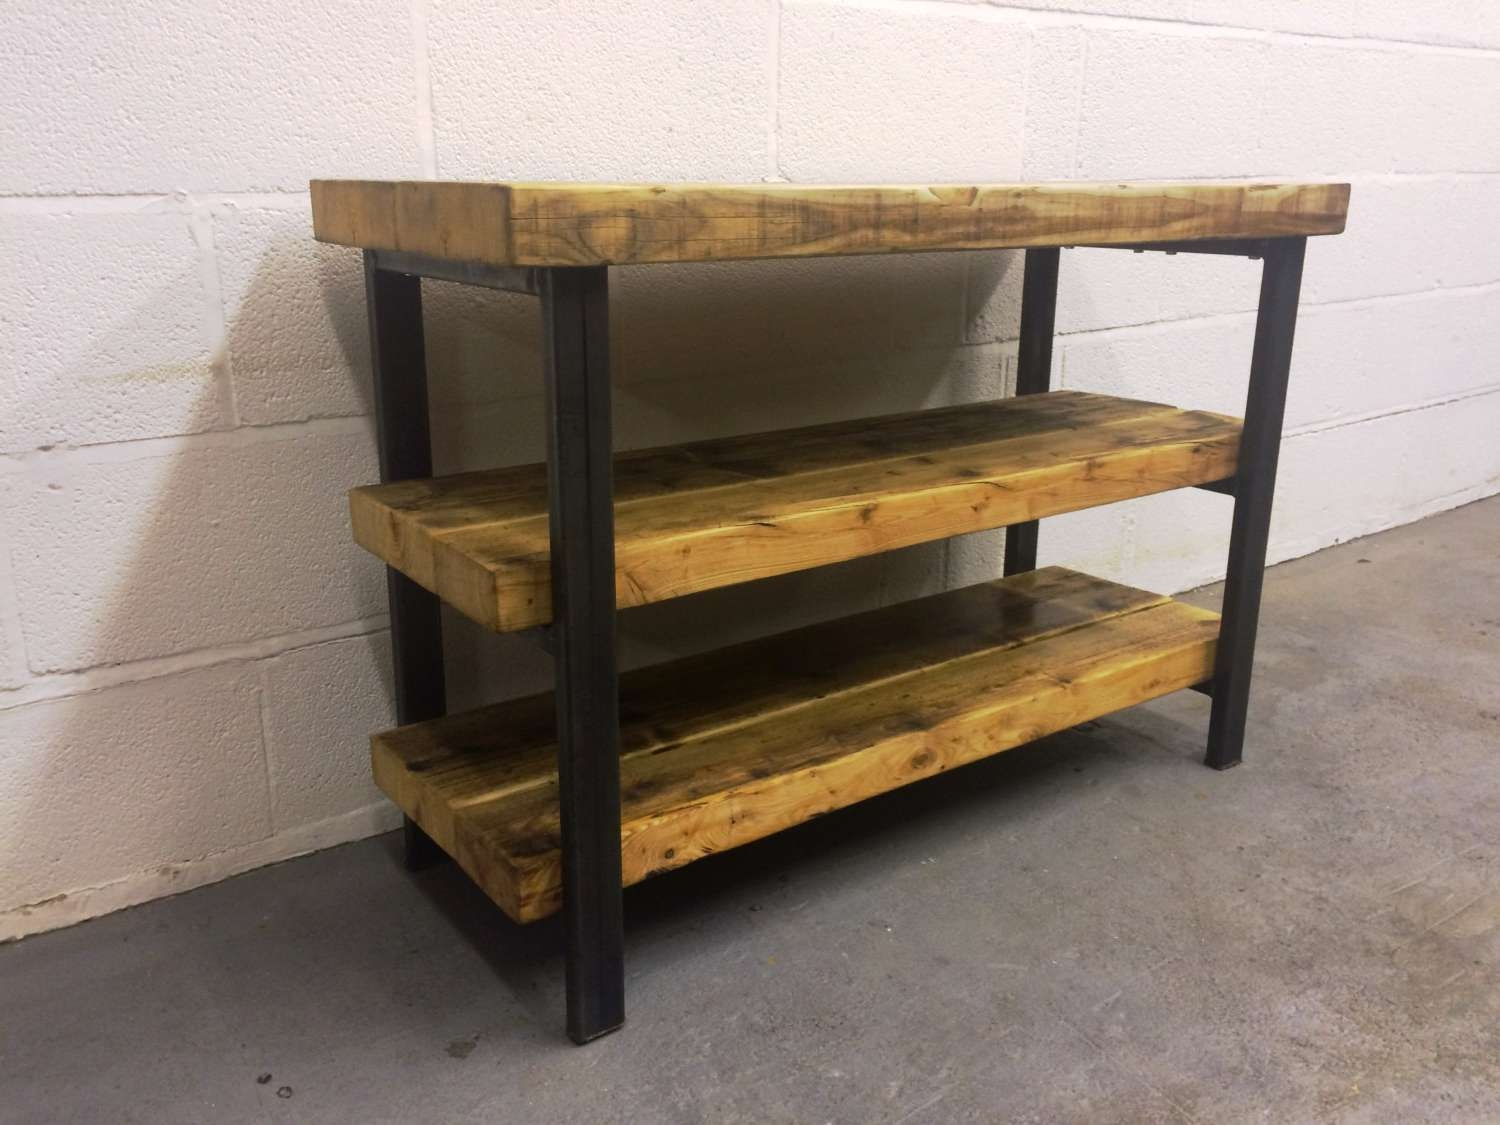 Industrial Chic Reclaimed Tv Stand Media Centre Coffee Table Pertaining To Reclaimed Wood And Metal Tv Stands (View 3 of 20)